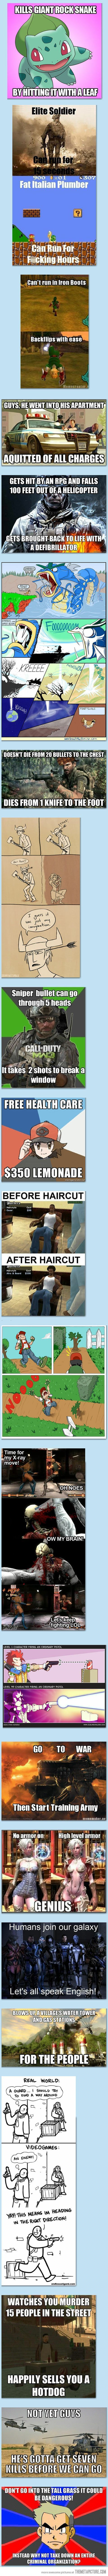 best Daily Video Game News images on Pinterest